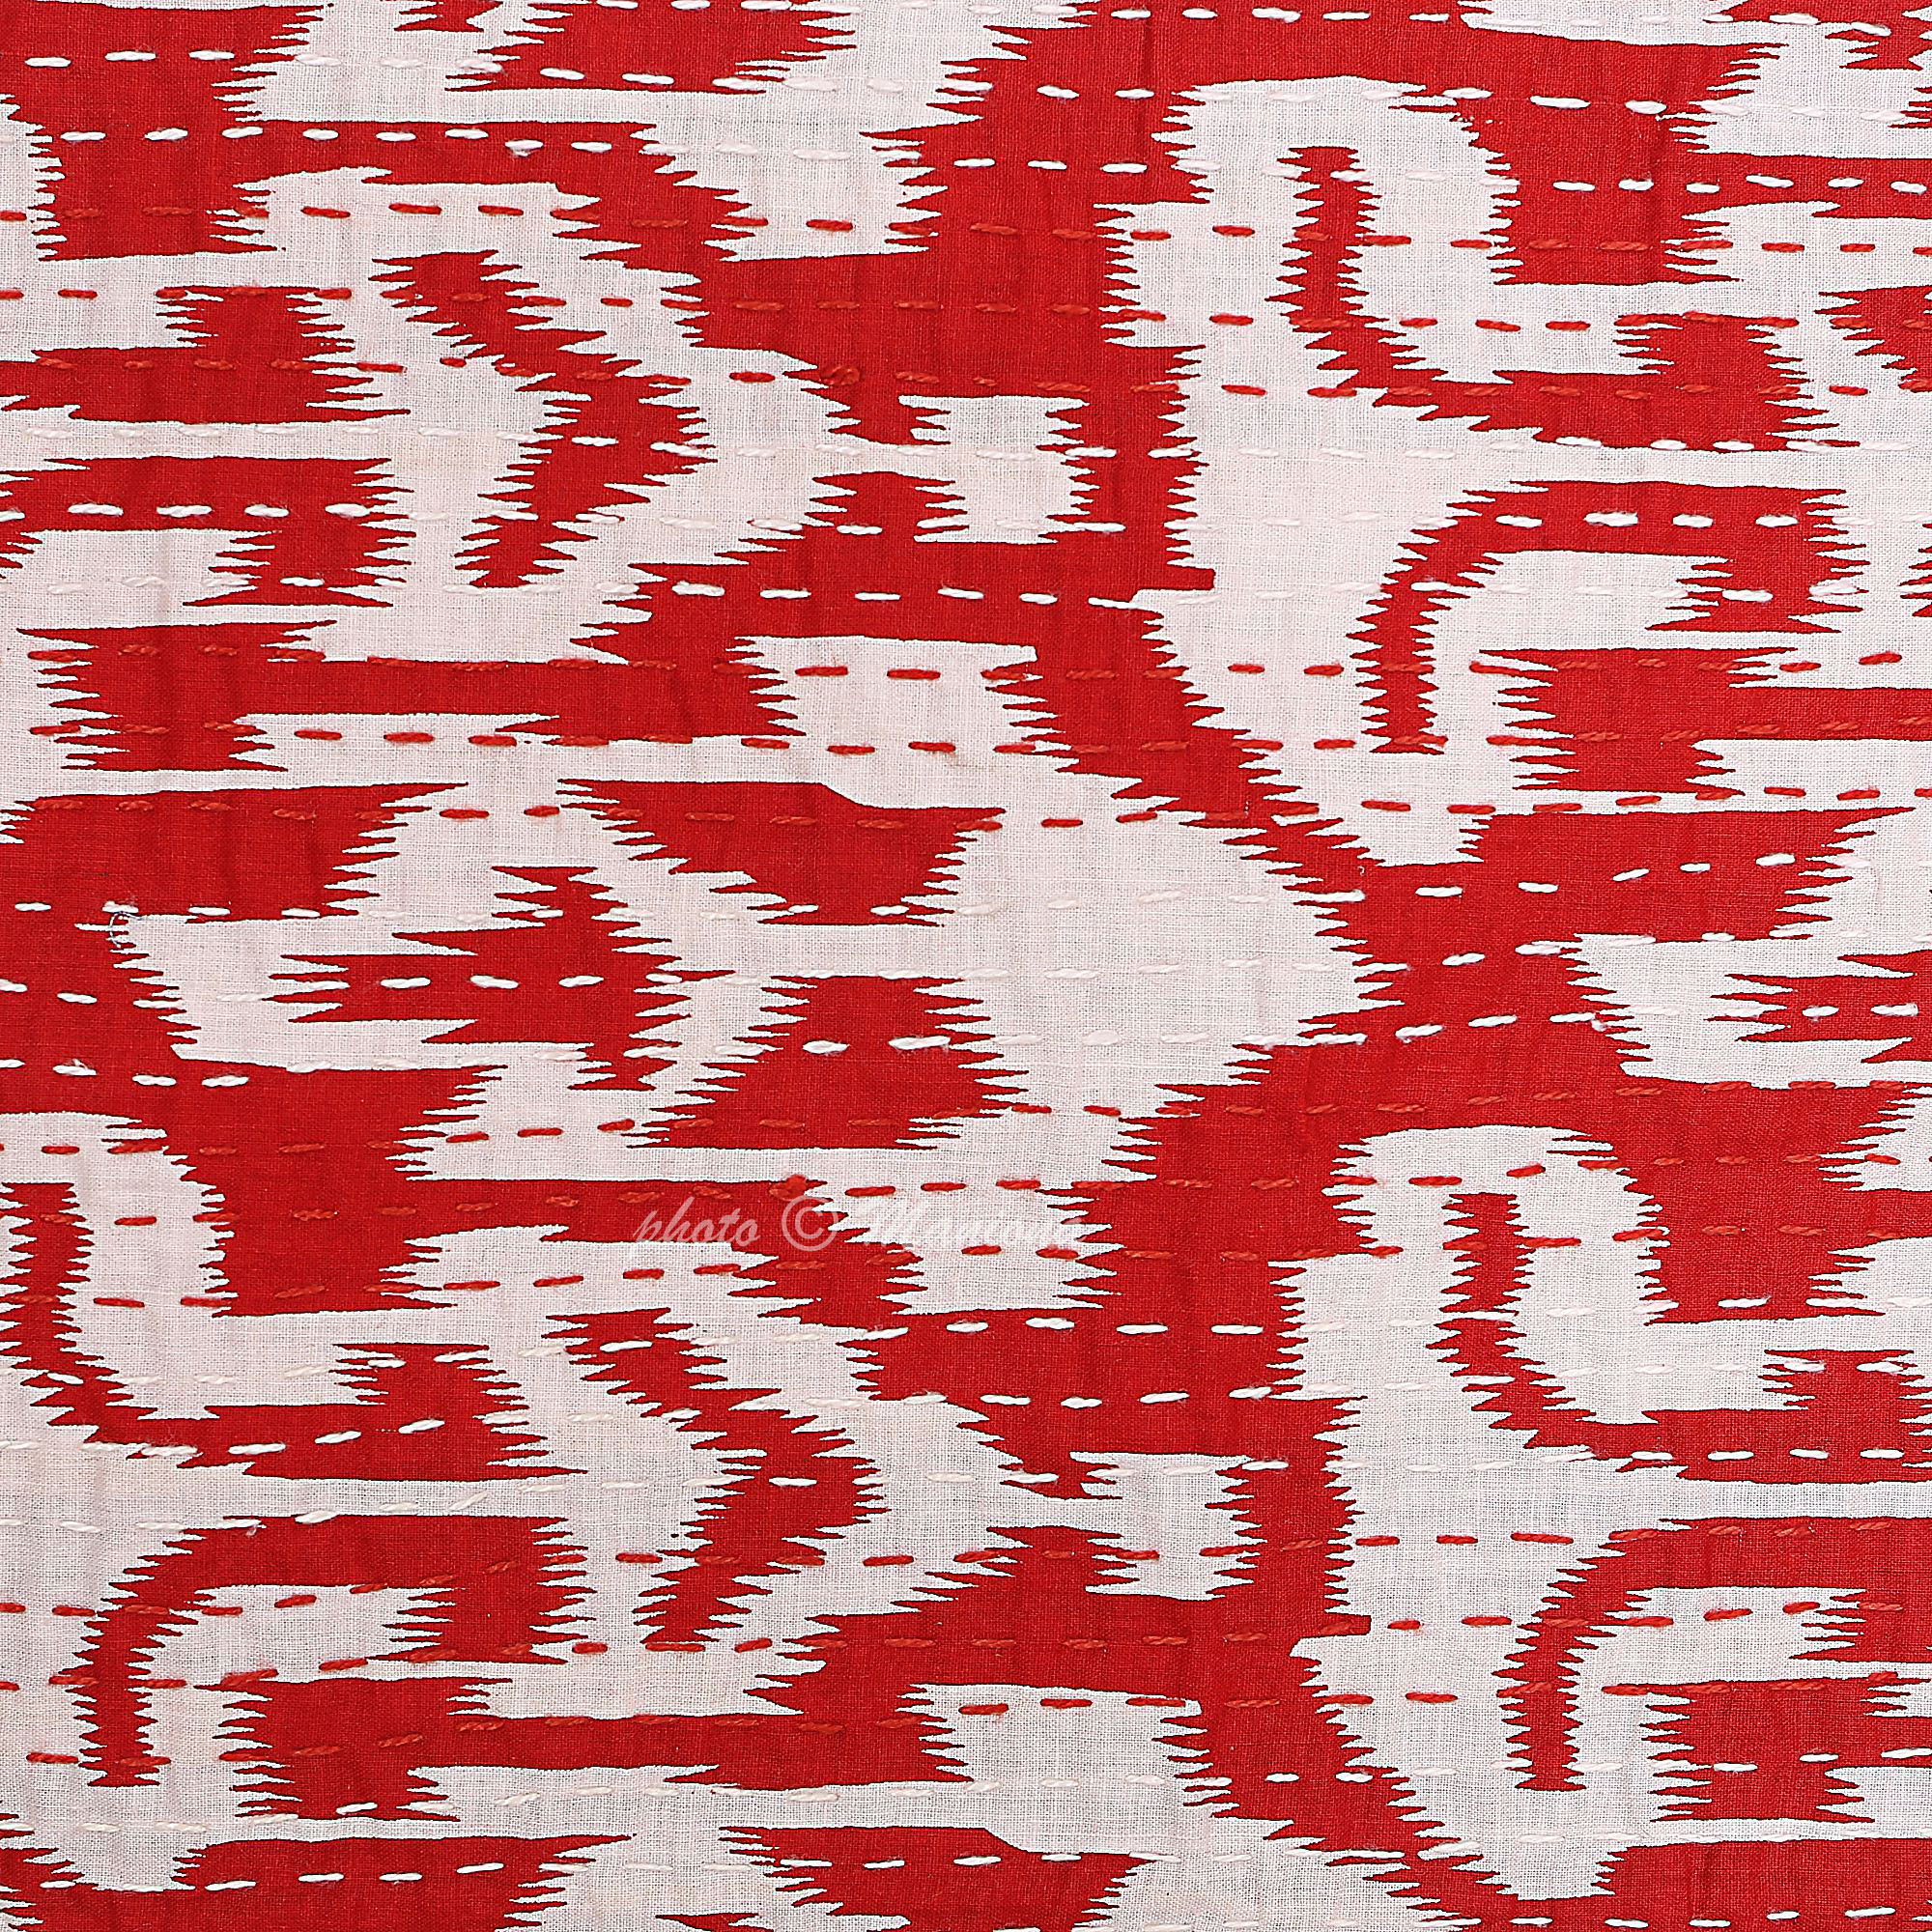 Red Ikat Print Kantha Cushion Cover 16 Inch Vintage